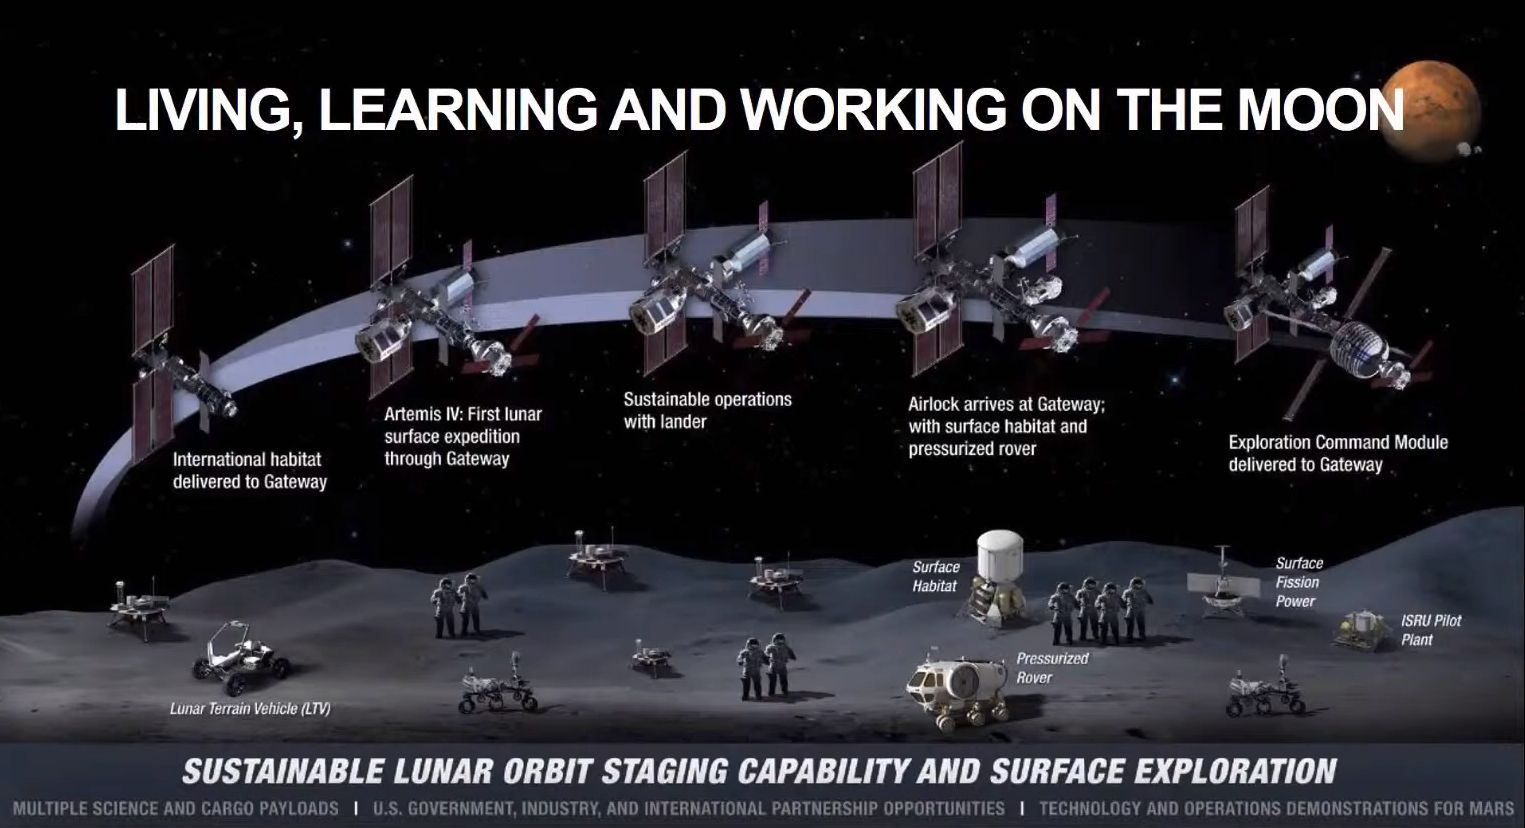 NASA's current plan to develop lunar surface architecture.